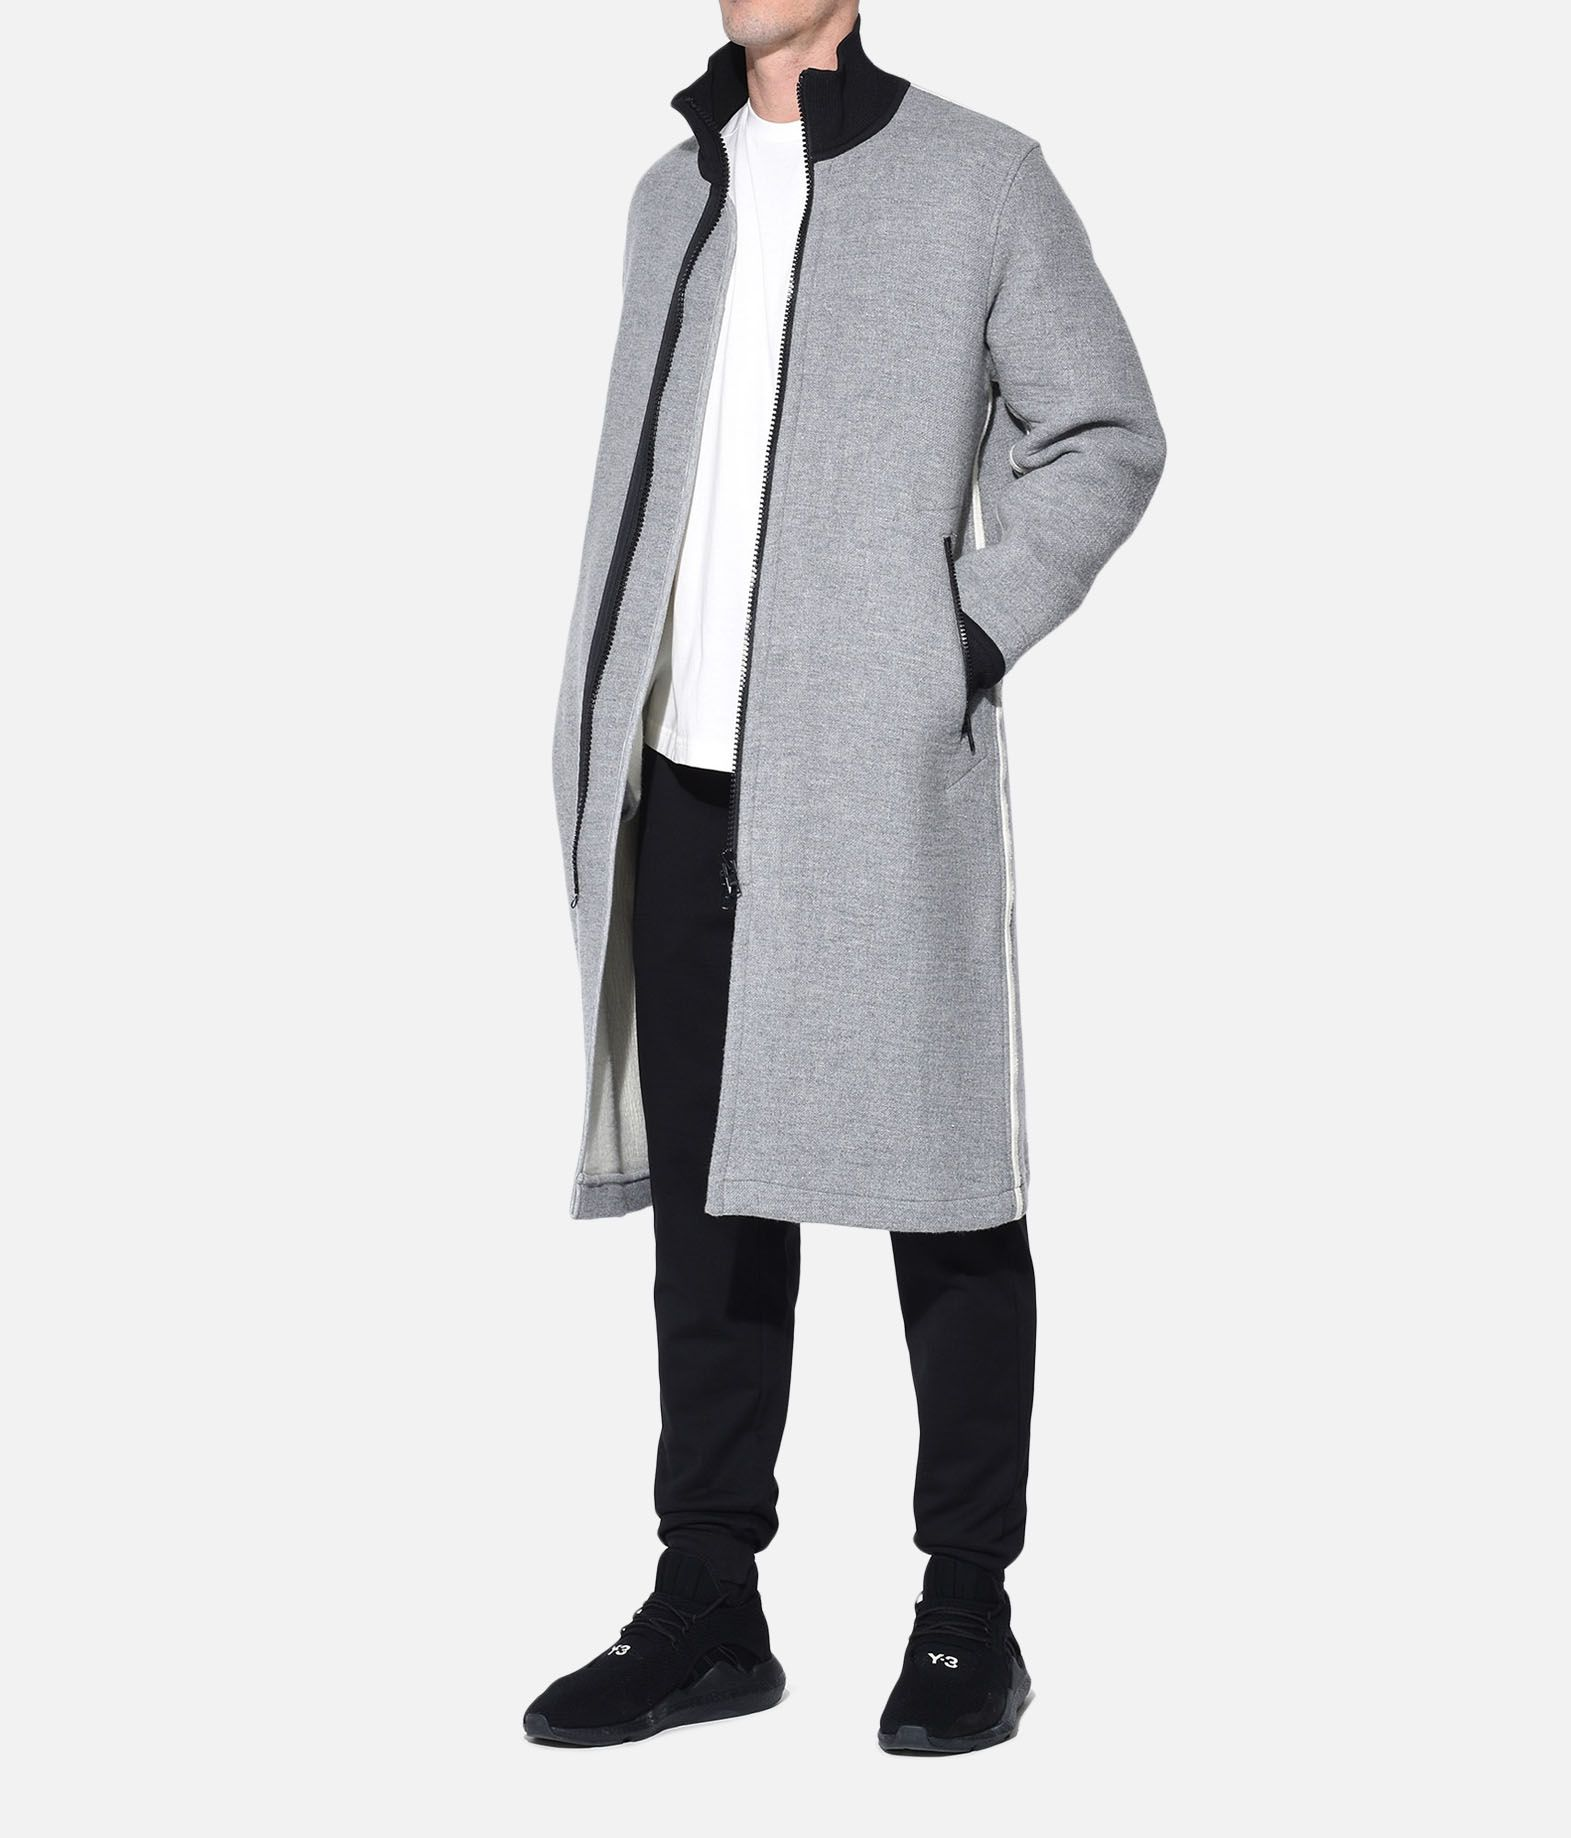 Y-3 Y-3 Spacer Wool Coat Coat Man a